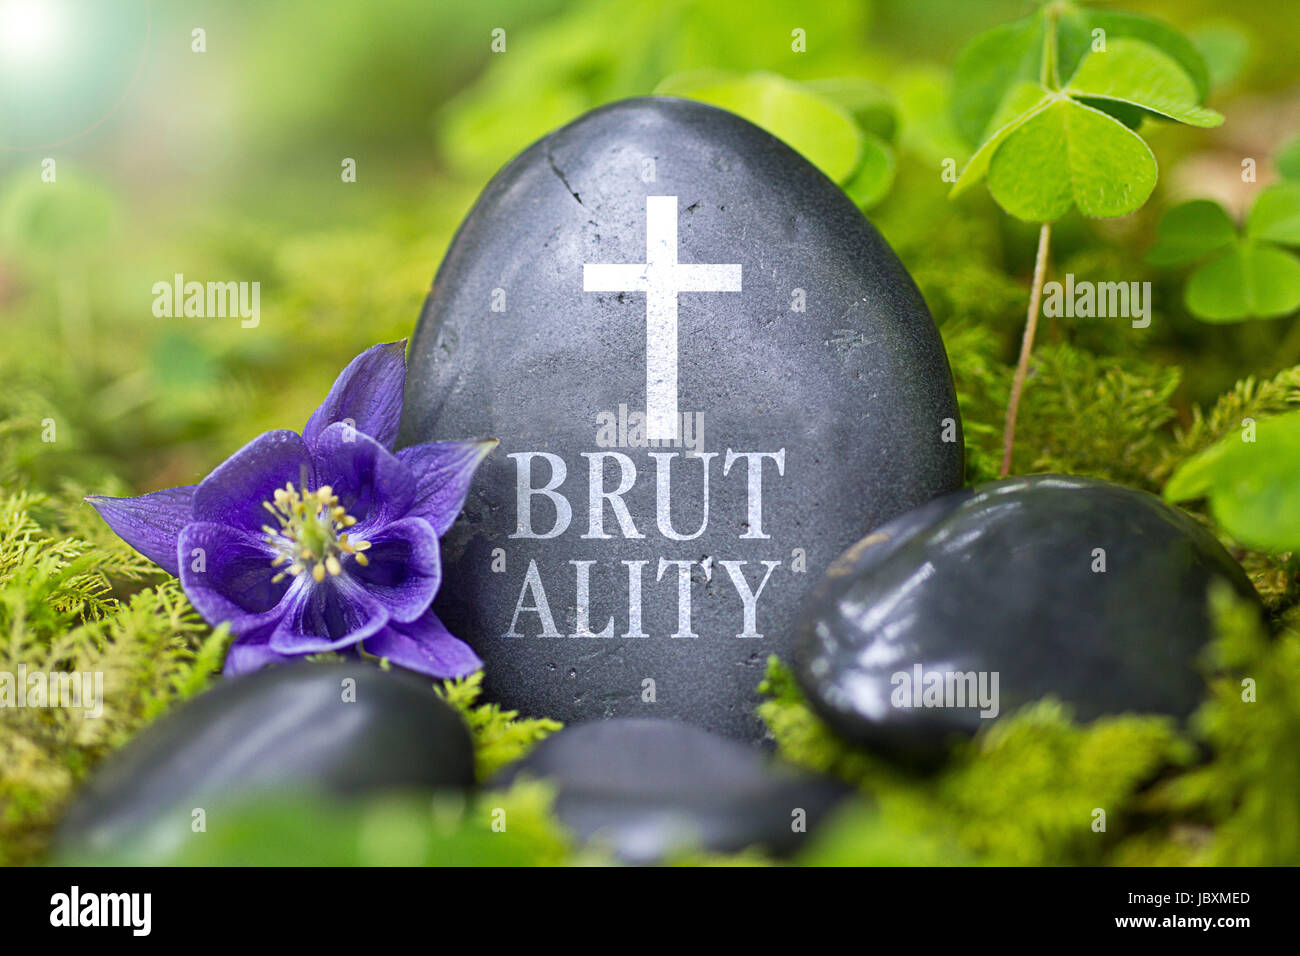 brutality - Stock Image